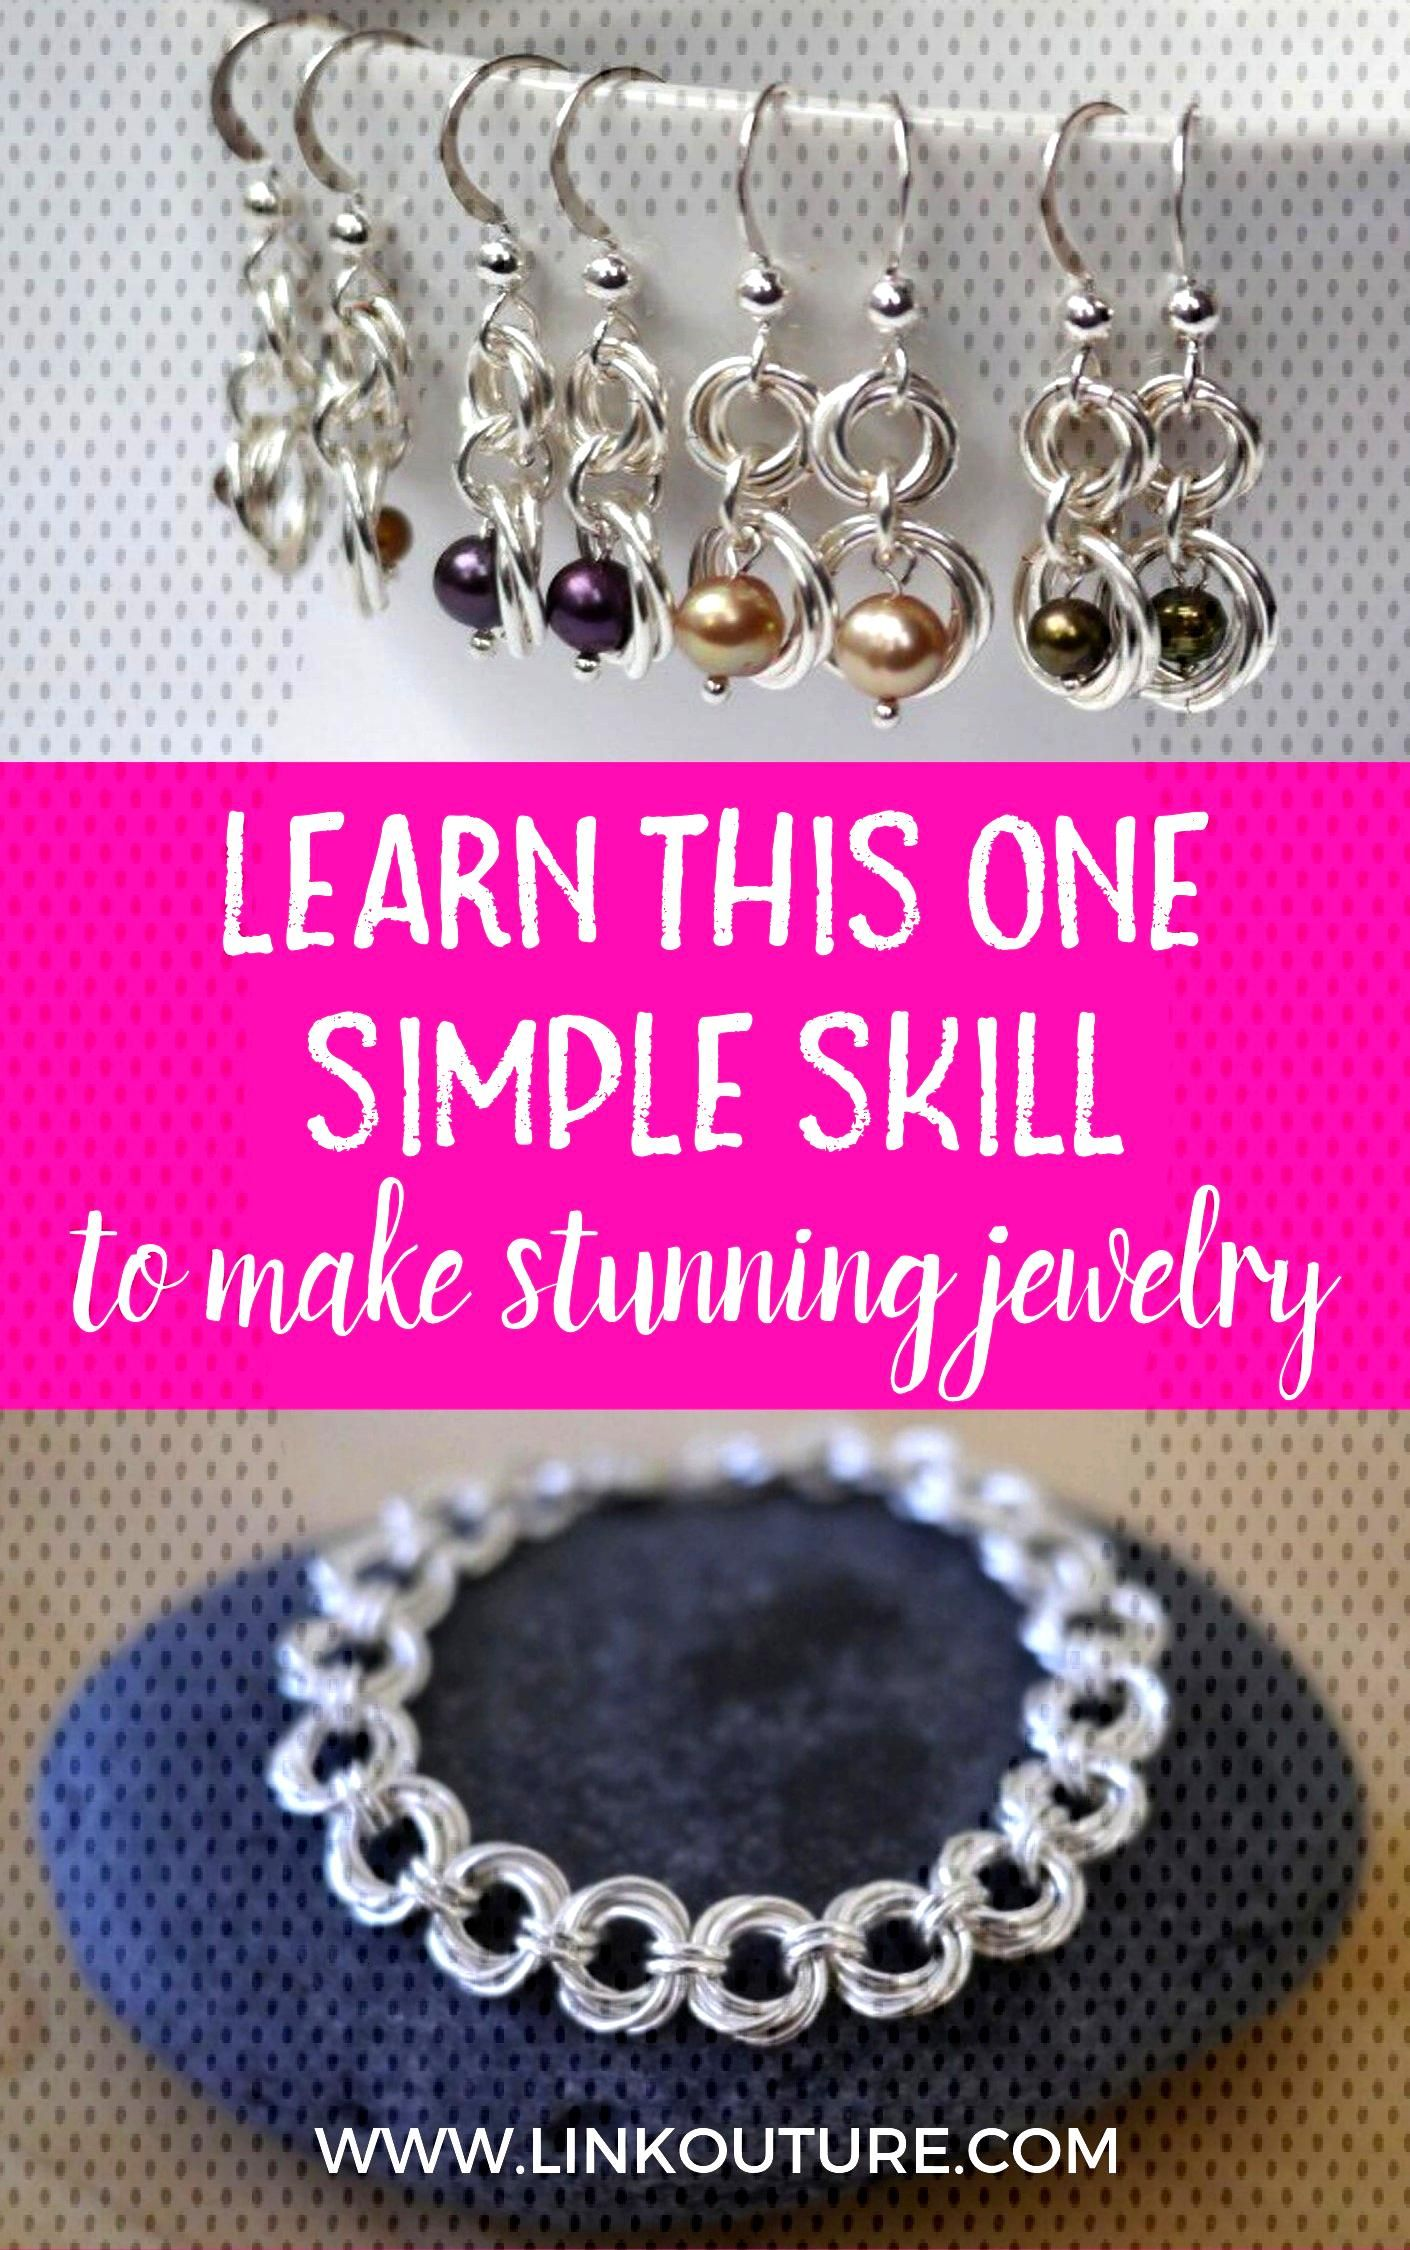 This mobius spiral is the basis for making numerous gorgeous pieces of jewelry. Learn how to make a